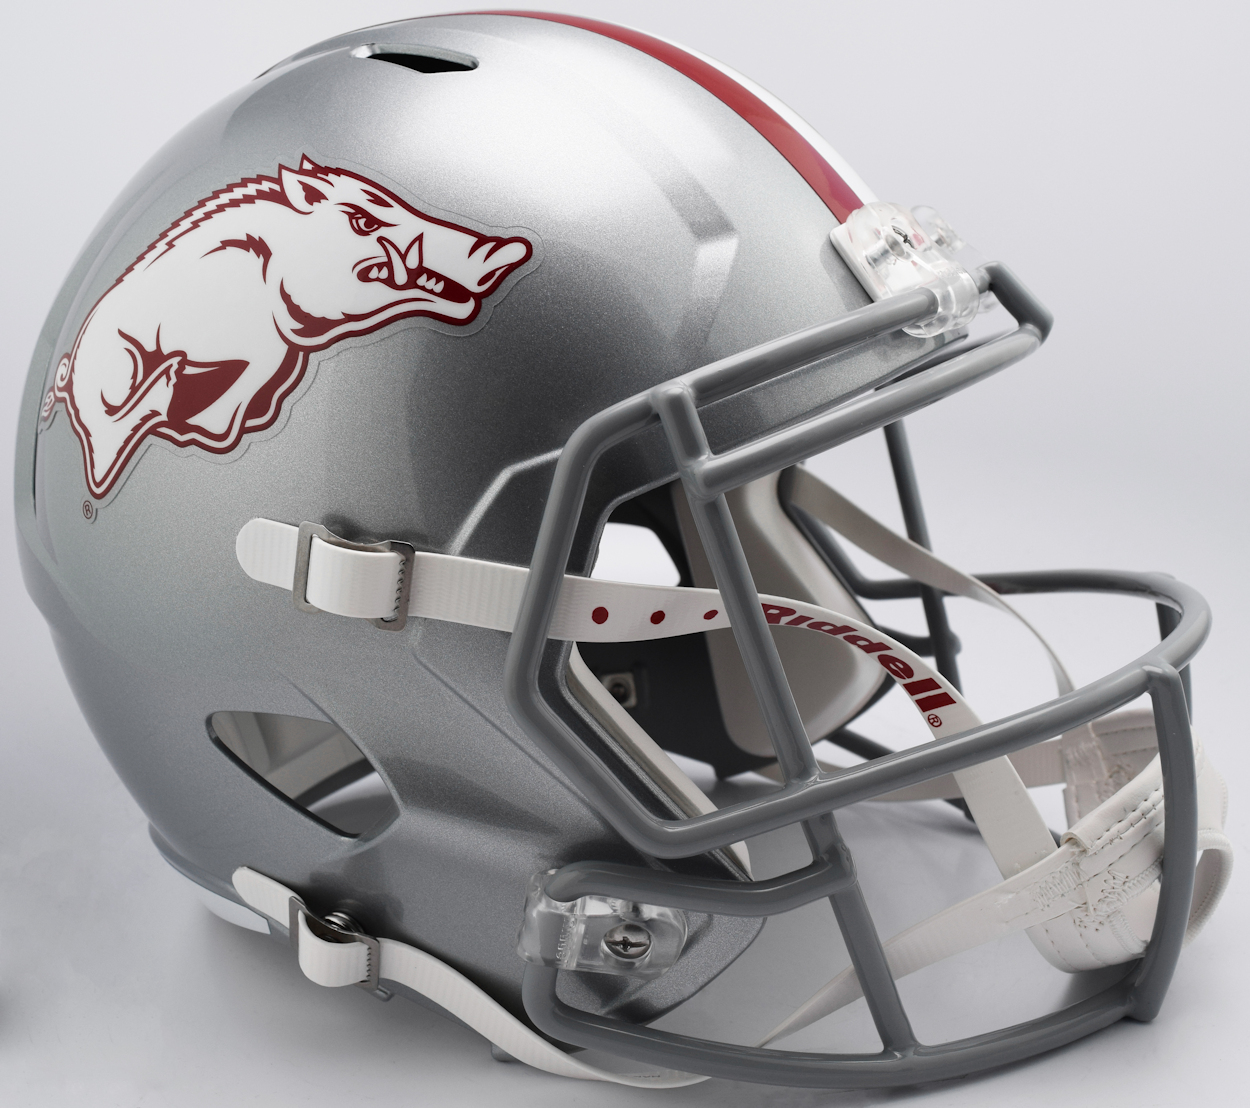 Arkansas Razorbacks Speed Replica Football Helmet <B>NEW 2017 Silver w/gray mask</B>